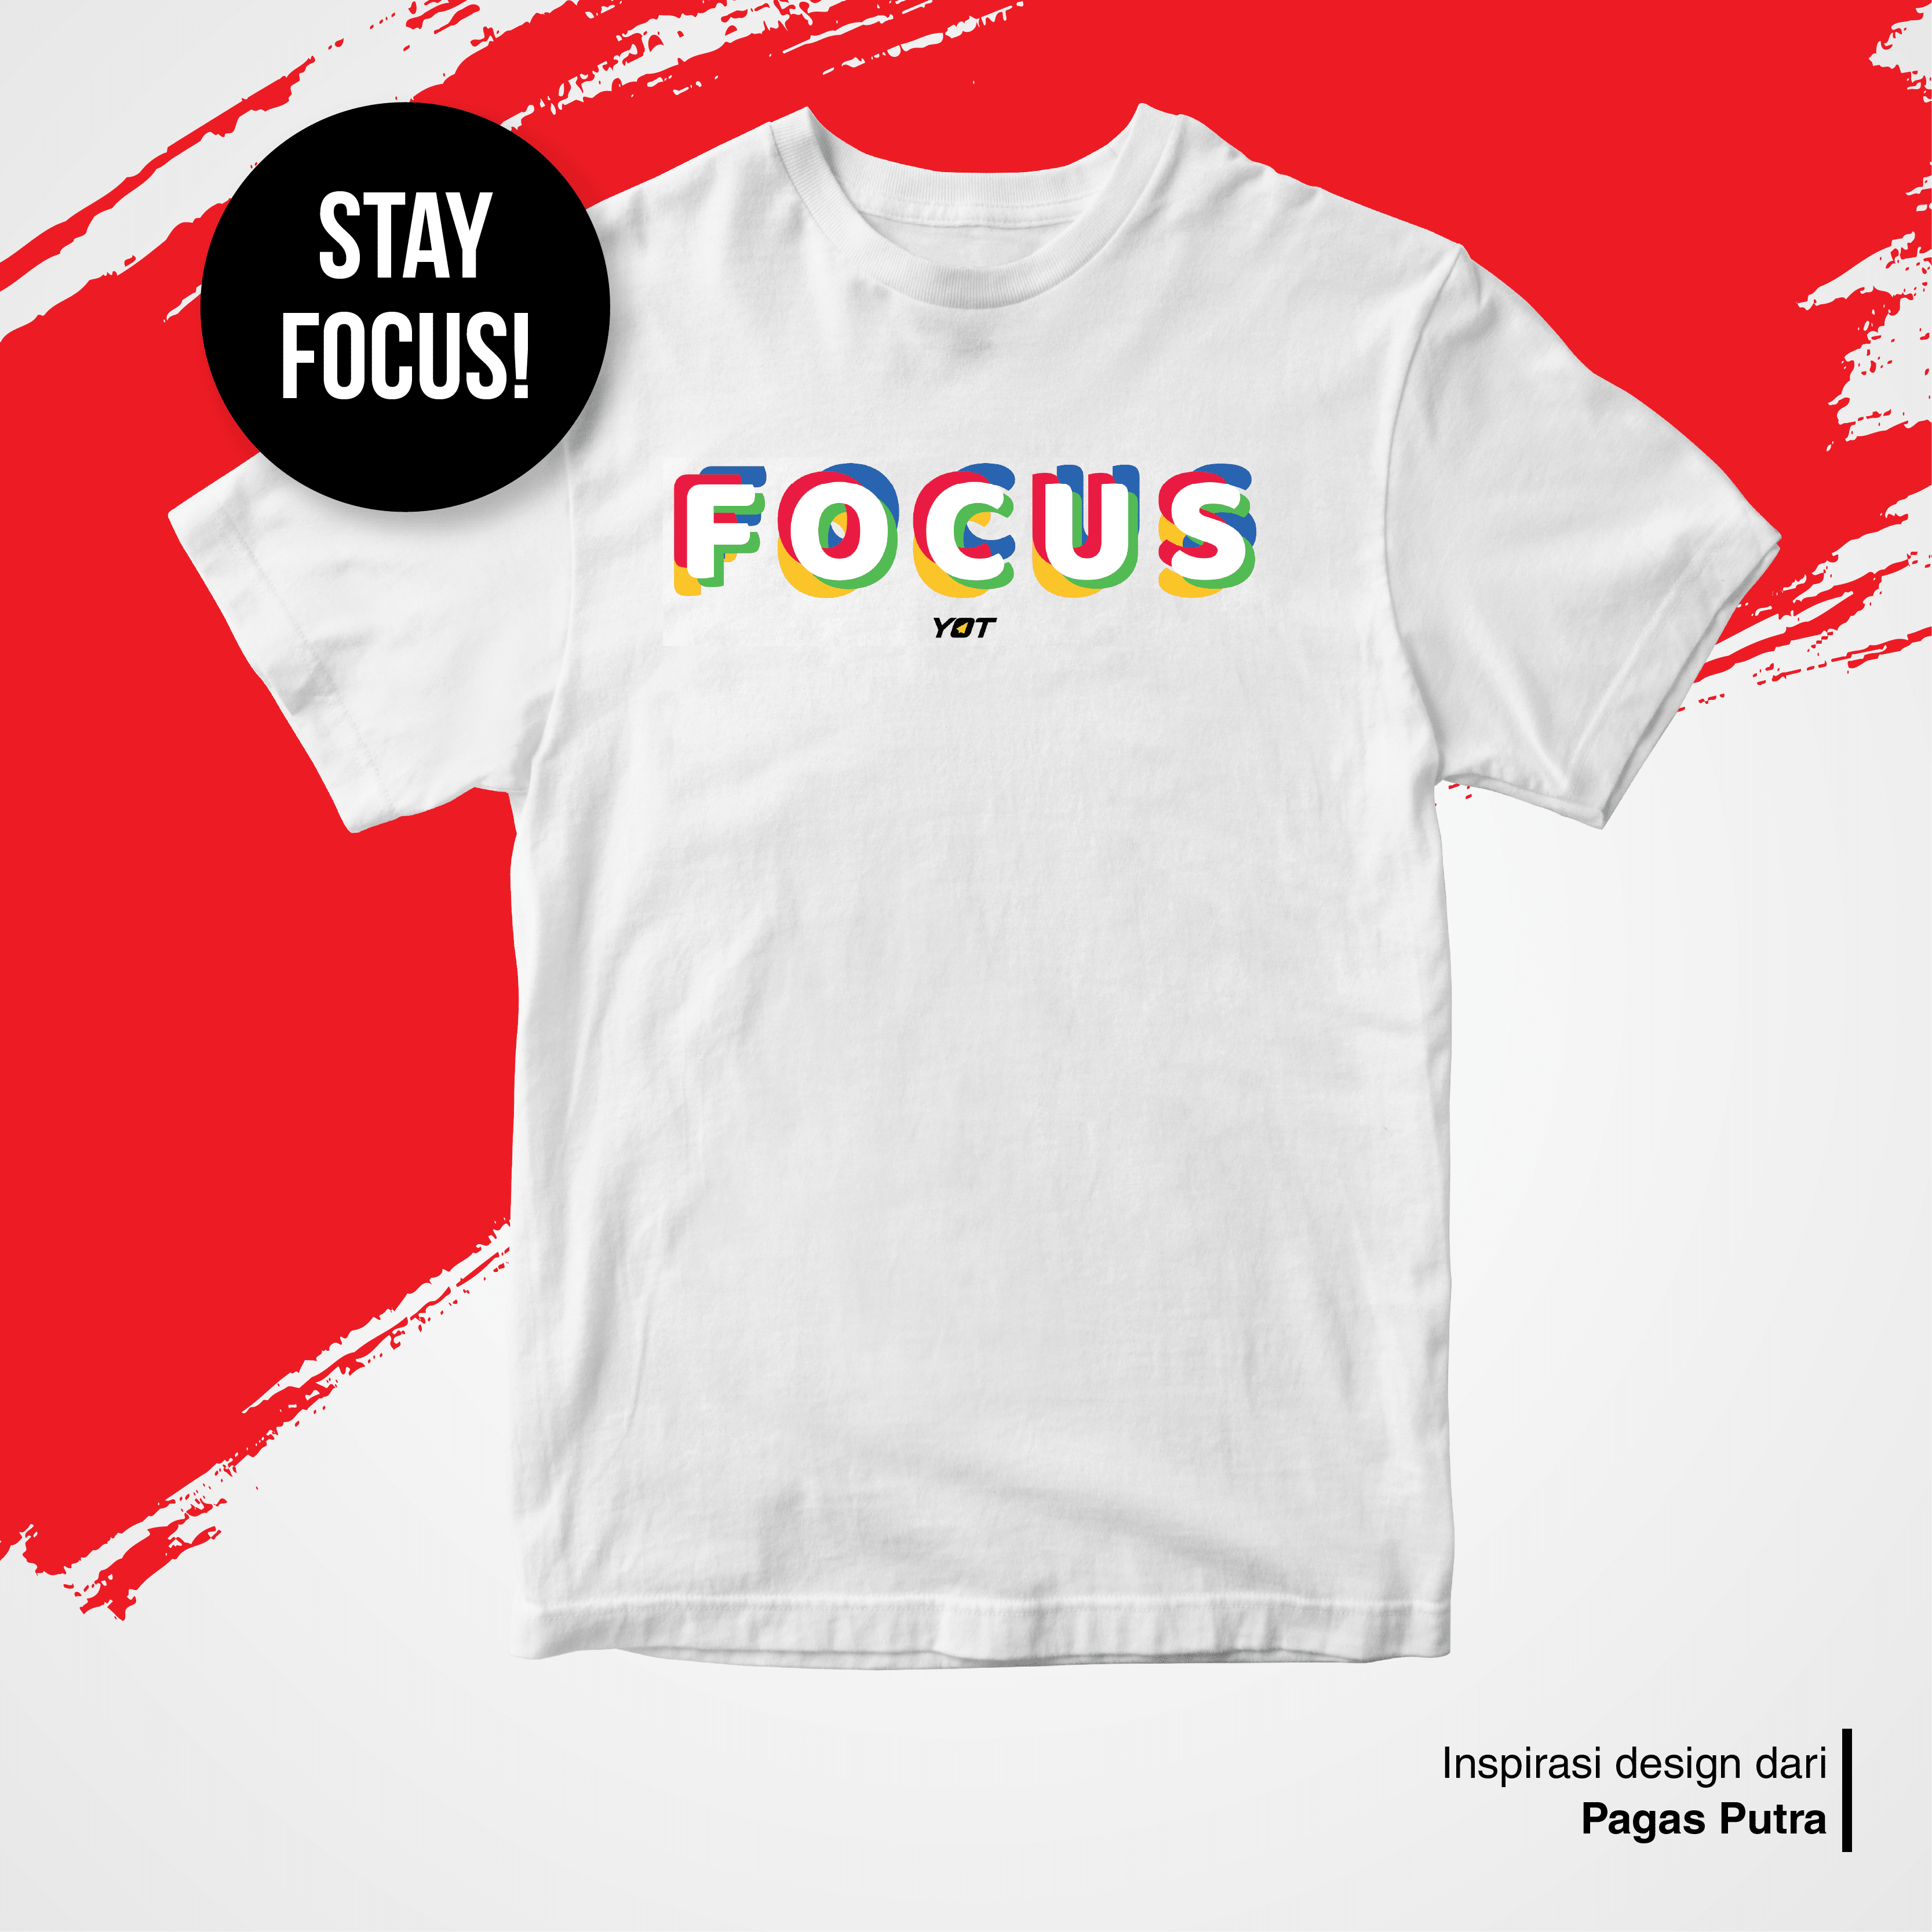 Stay Focus!